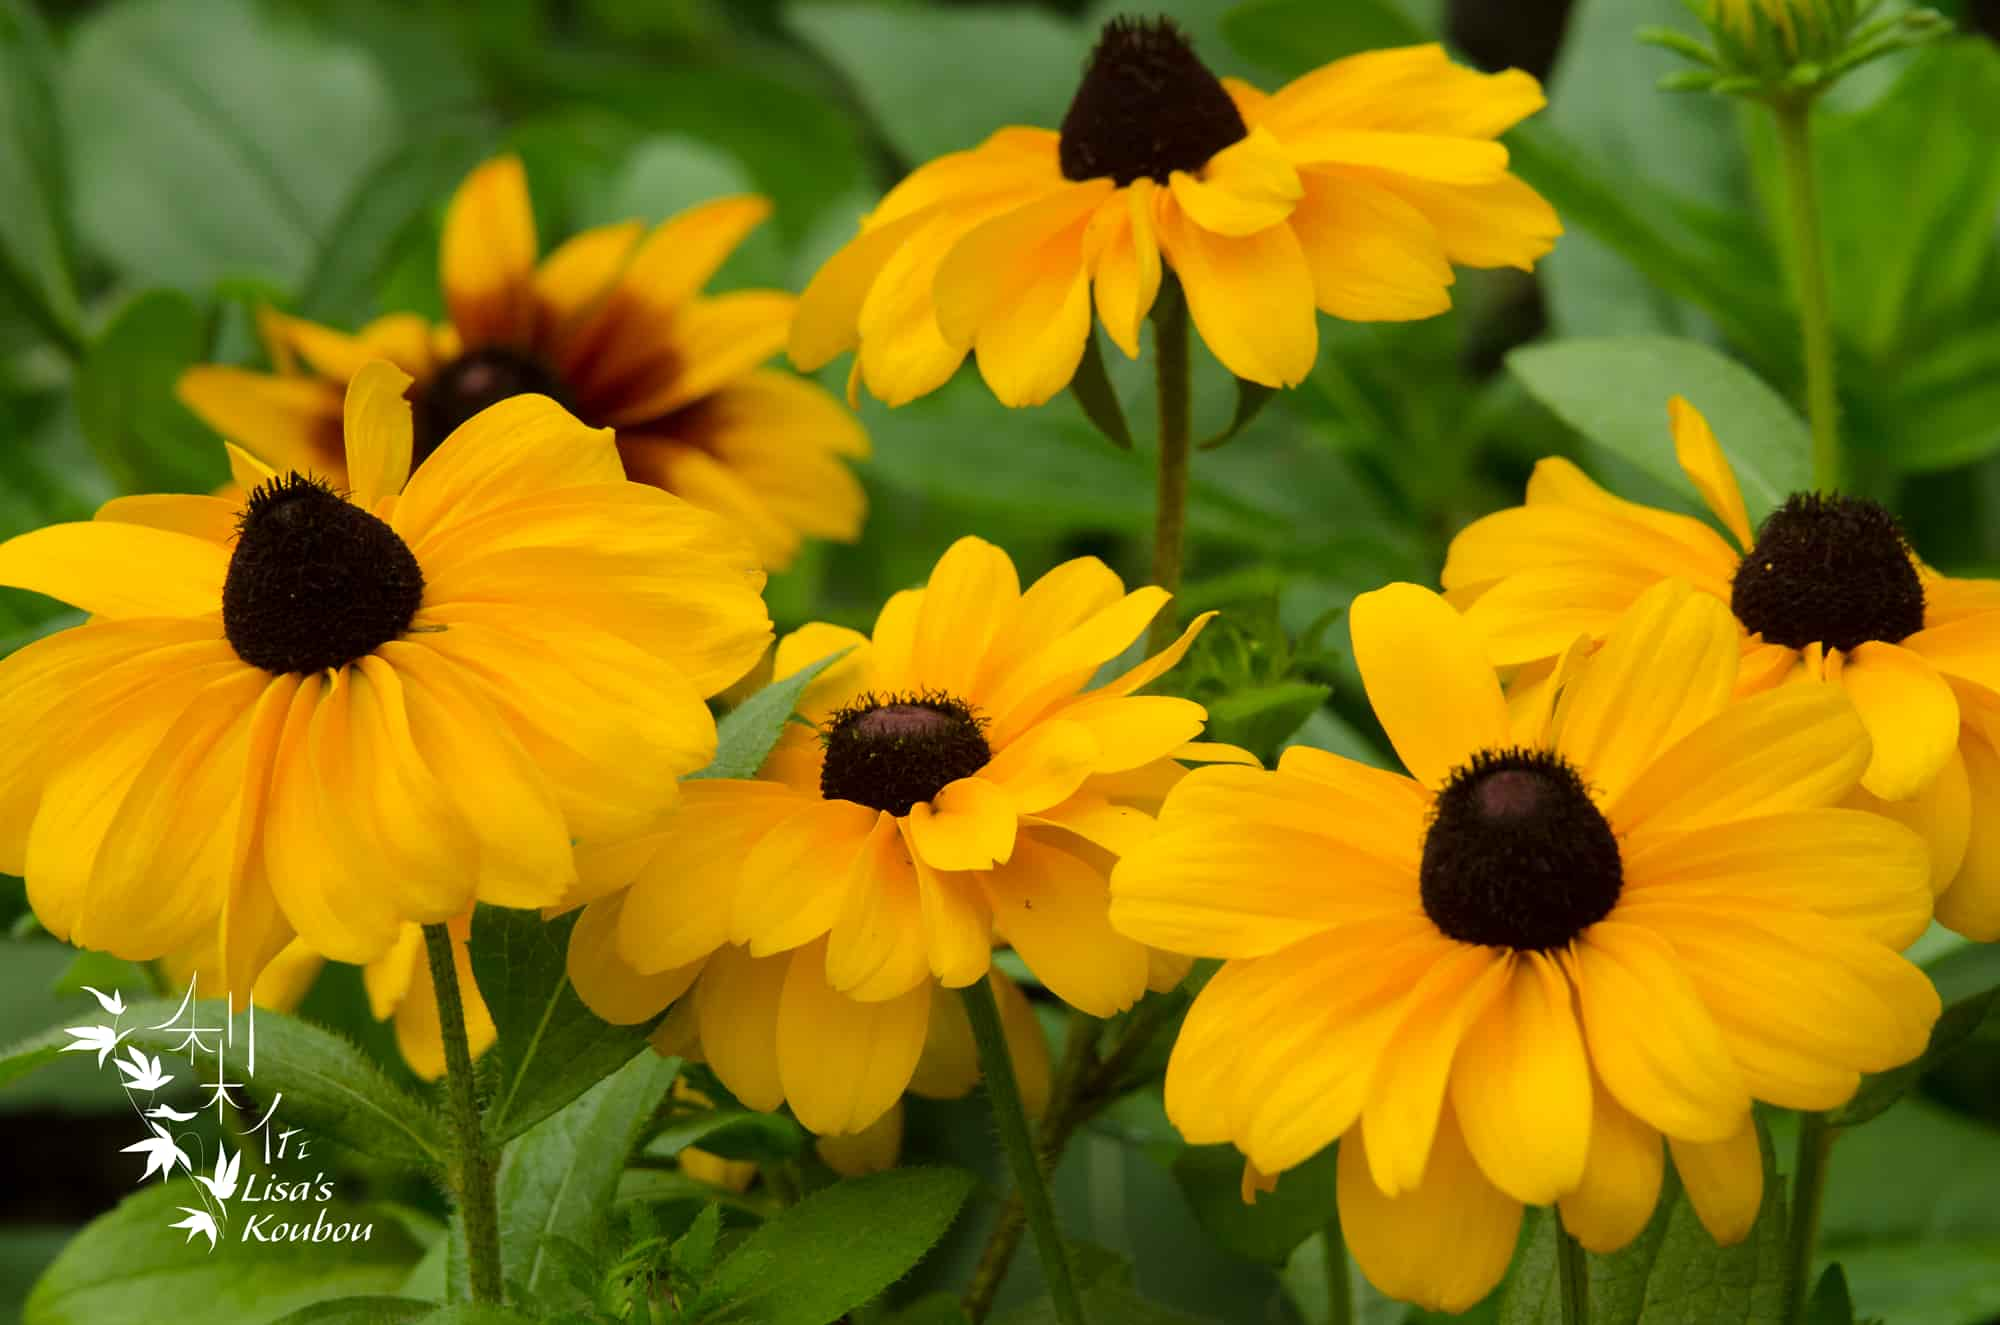 Black Eyed Susan like flowers